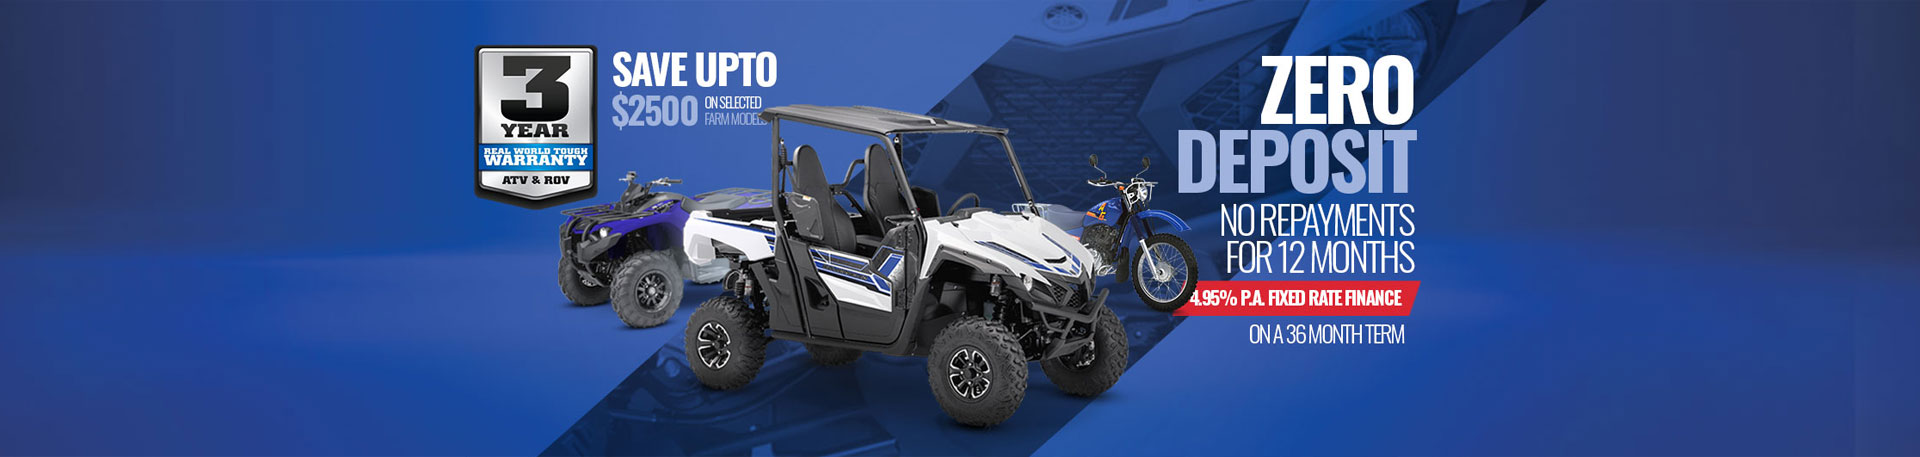 https://www.yamahas.nz/i/Images/promos/Offer_Banner_ZeroDeposit.jpg